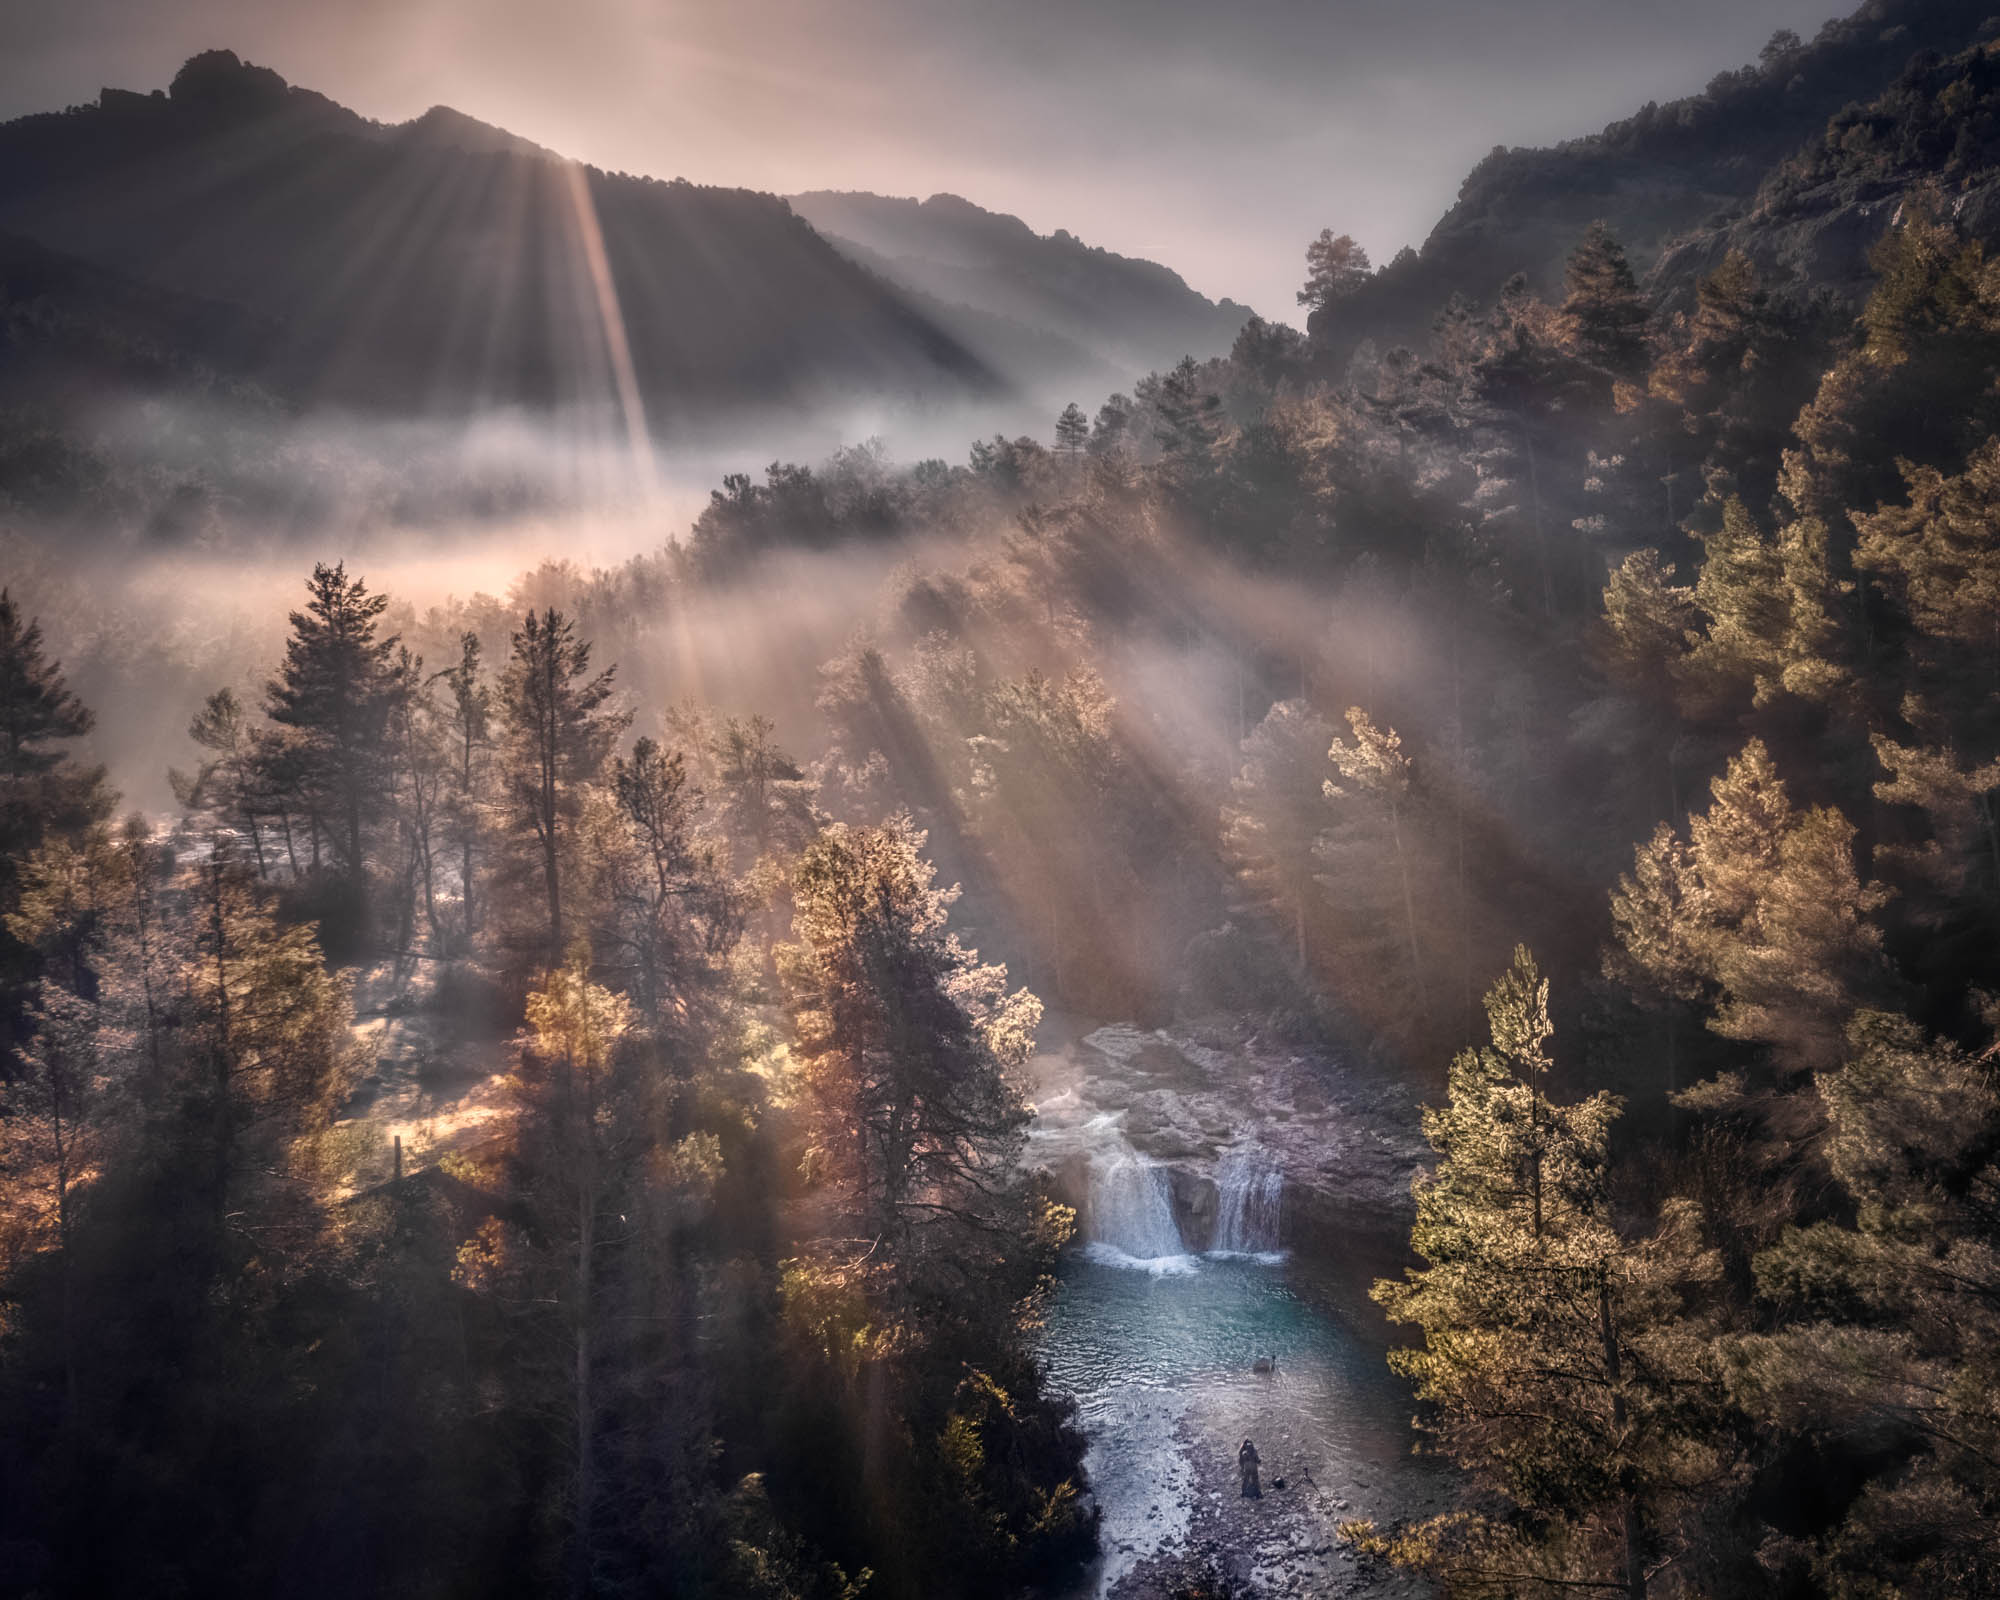 Photo taken by drone of a waterfall in a foggy forest